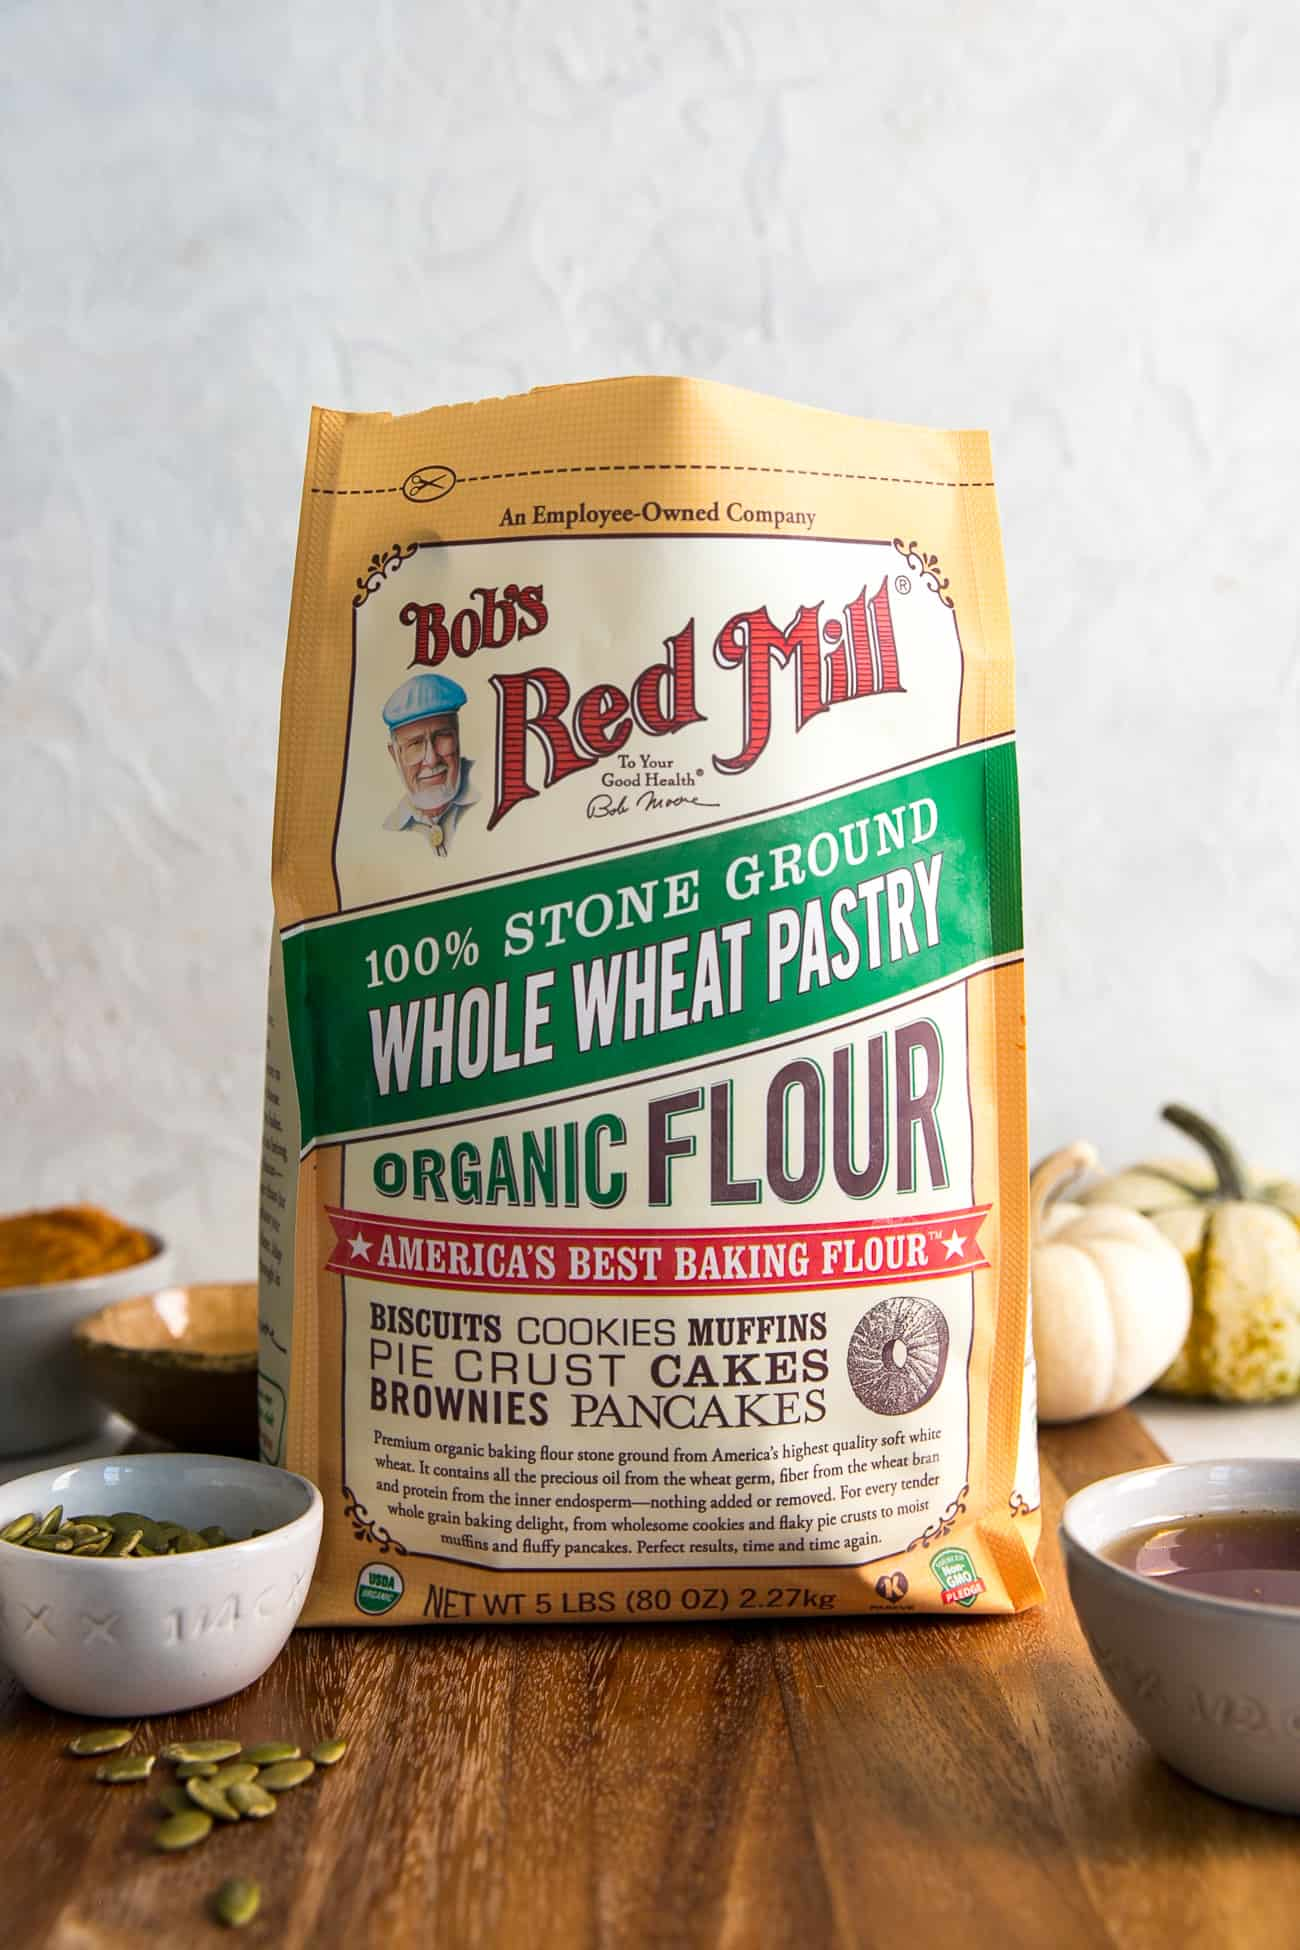 bag of bob's red mill whole wheat pastry flour on wooden board, with ingredients in background